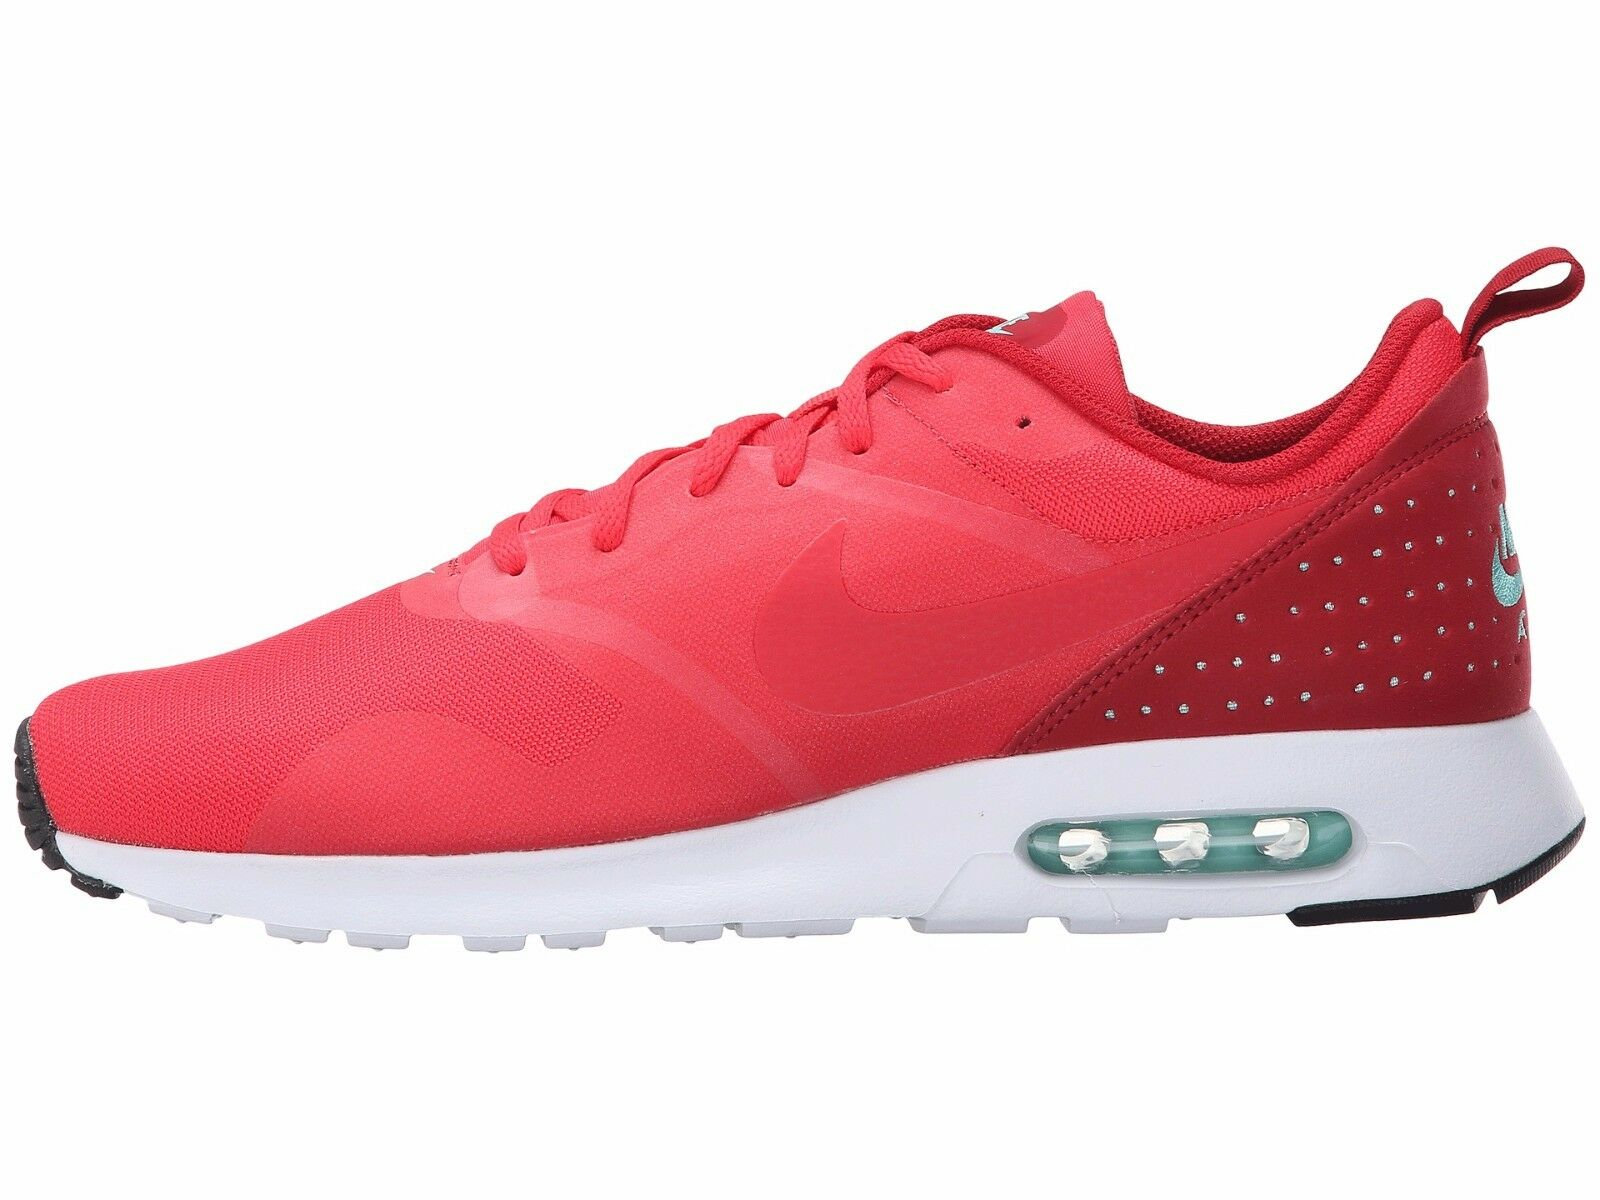 Men's Nike Air Max Tavas Running Shoes, 705149 603 Sizes 11-11.5 Action Red/Whit